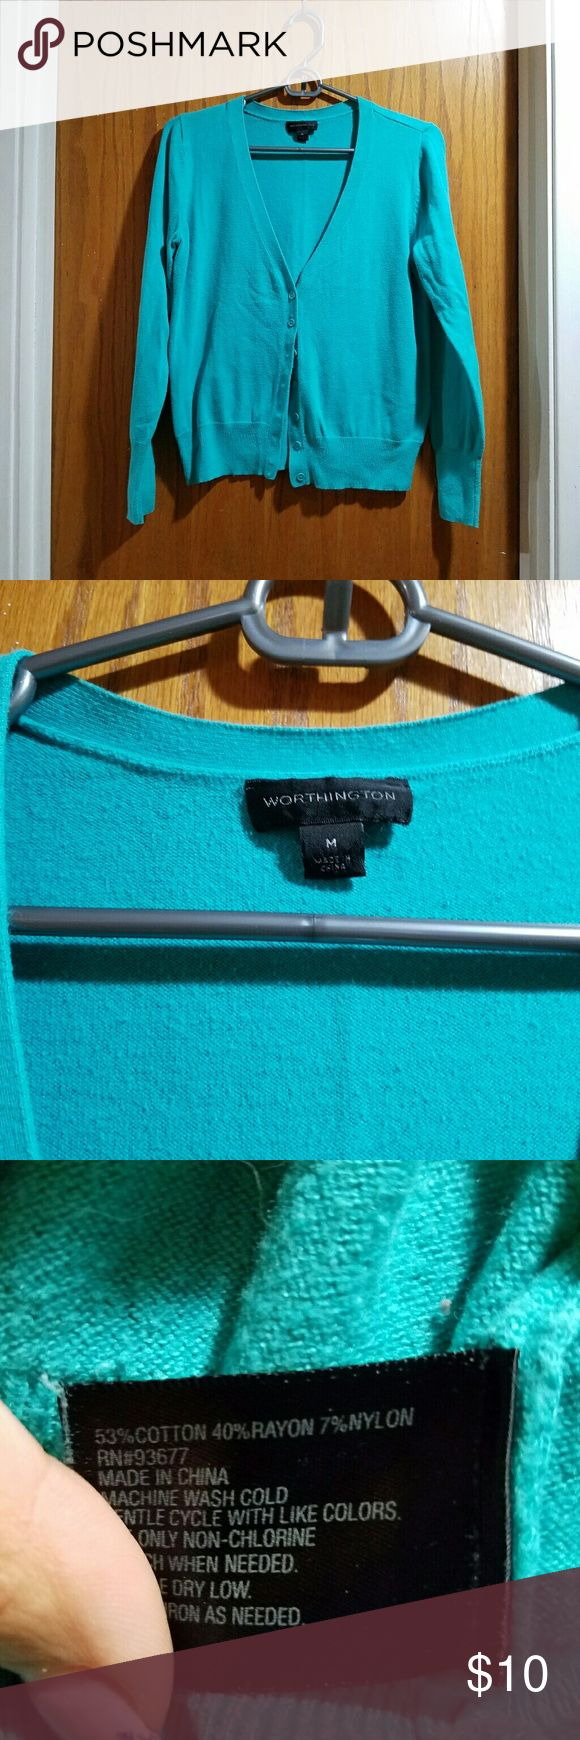 Turquoise Cardigan Good condition has been worn a few times but still in good condition. Worthington Sweaters Cardigans